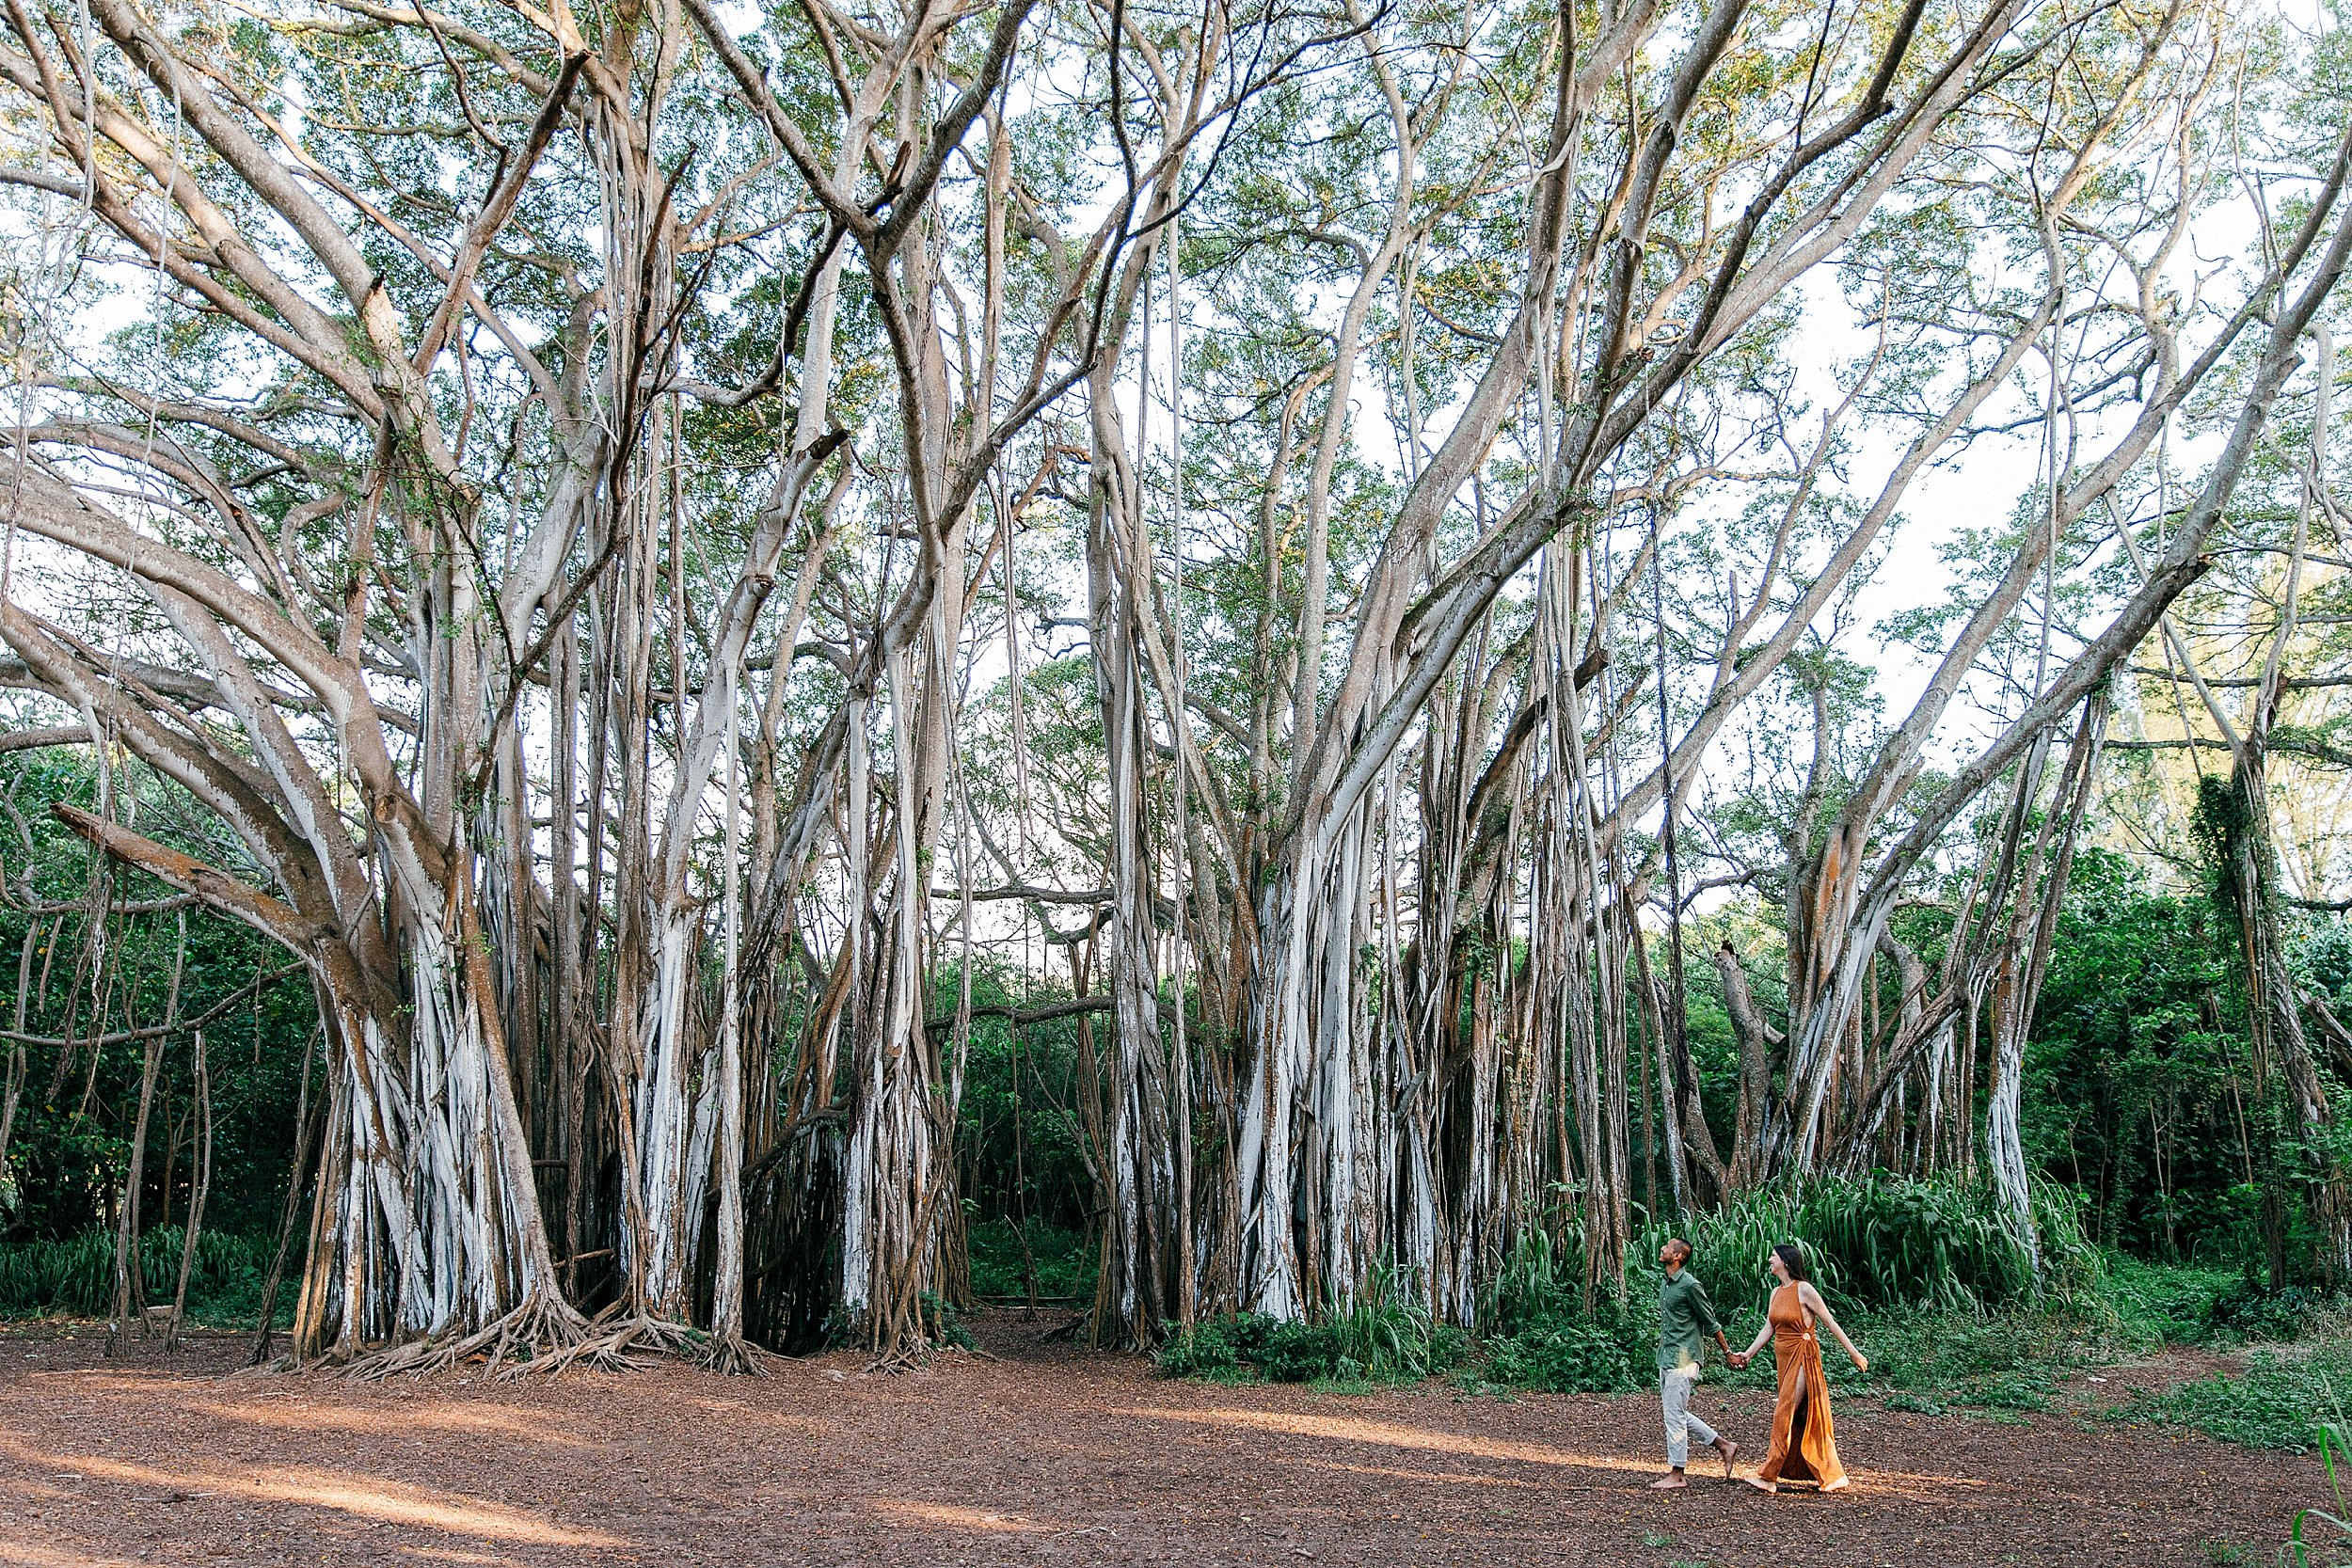 Katelyn & Ignacio walk past a huge Banyan Tree at Kawela Bay on Turtle Bay Resort during their one year anniversary in Hawaii.